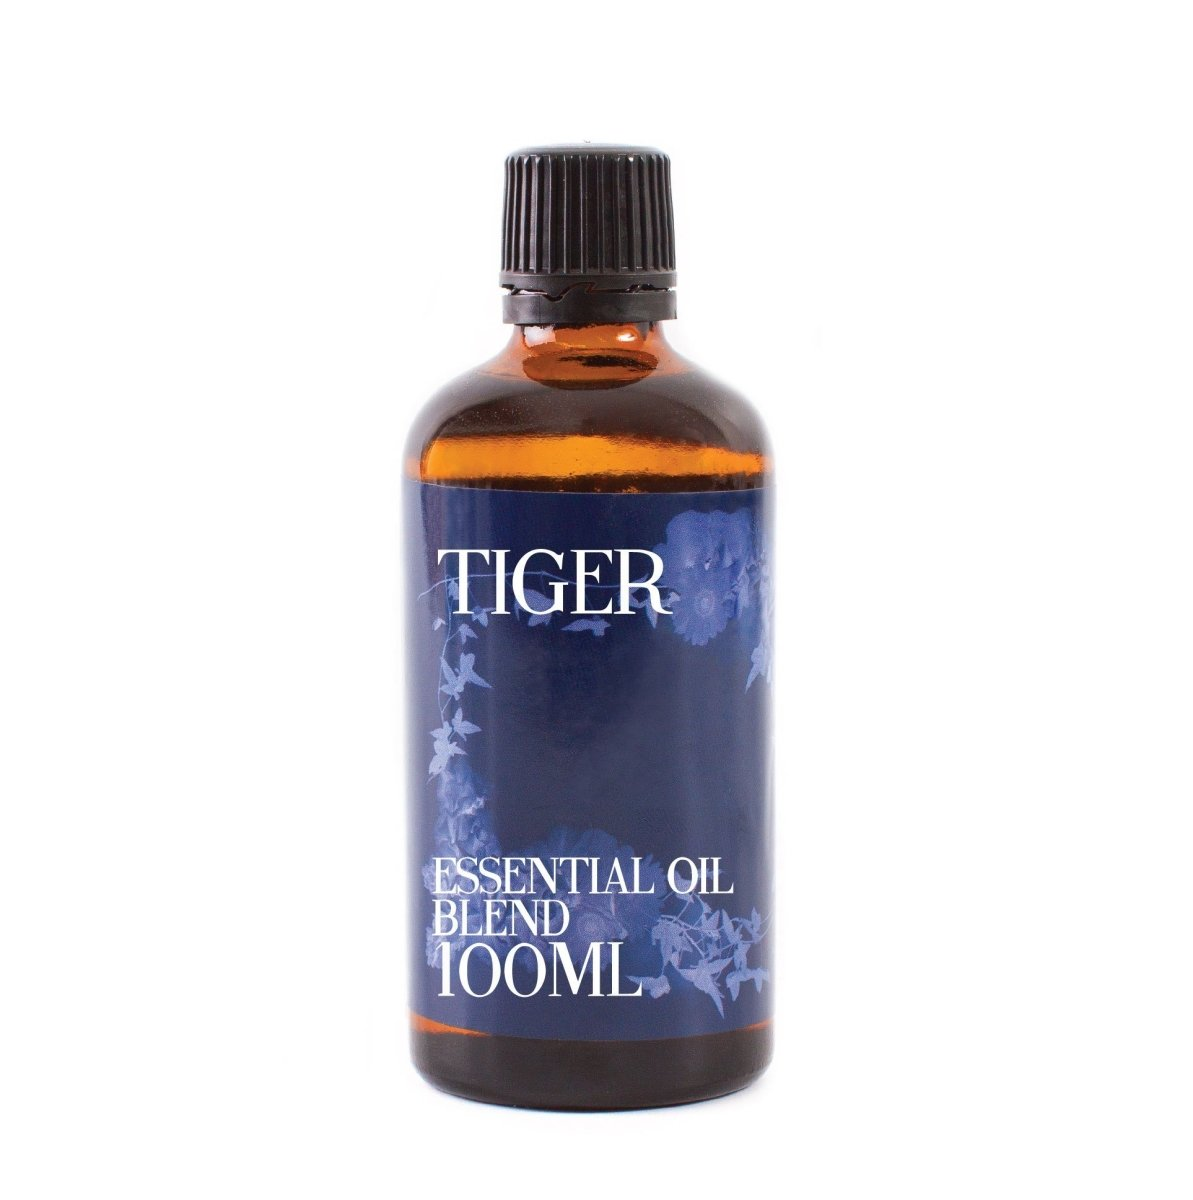 Tiger - Chinese Zodiac - Essential Oil Blend - Mystic Moments UK